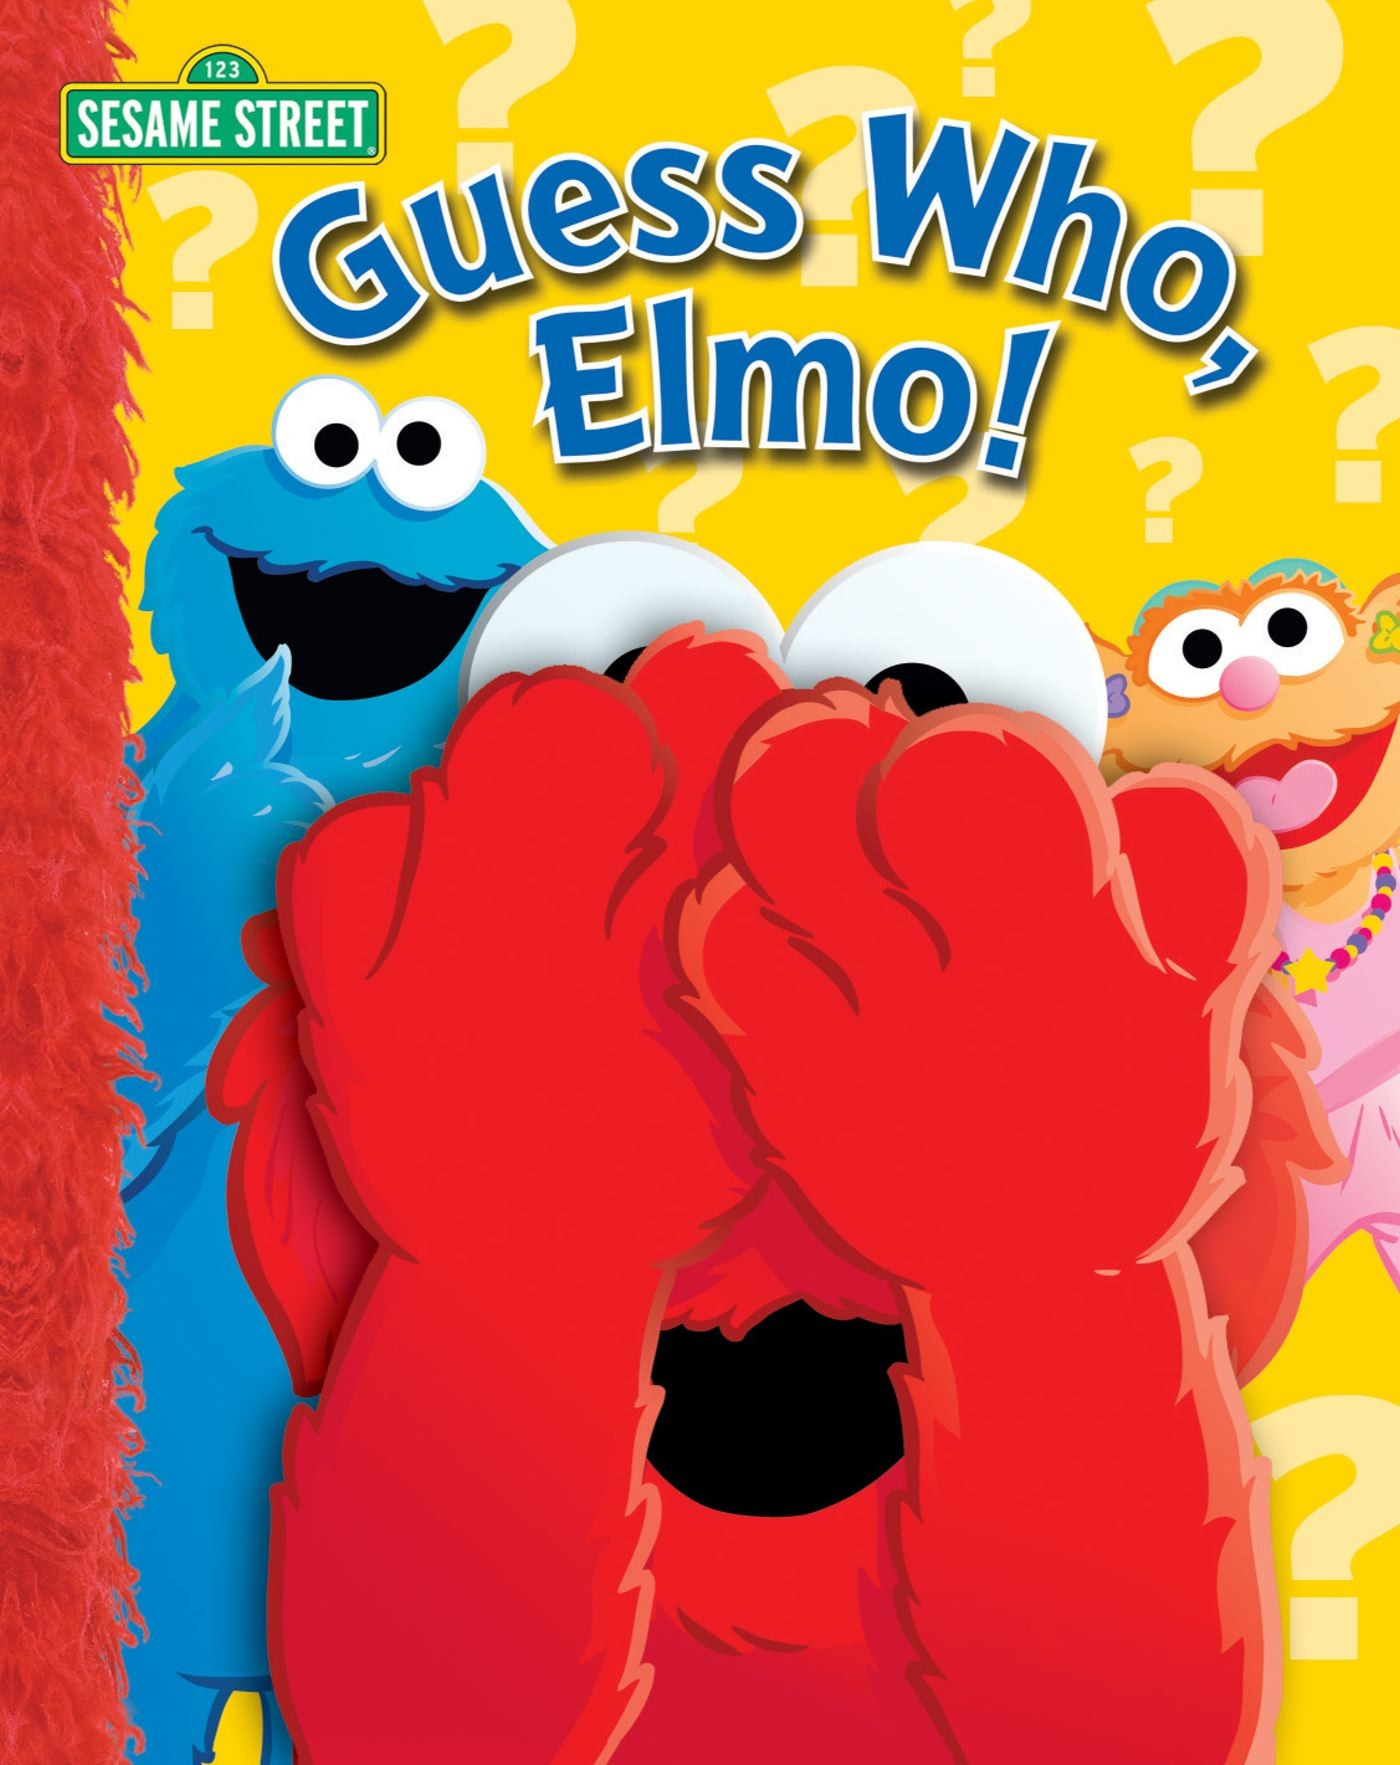 Sesame street guess who elmo 9780794412111.in01